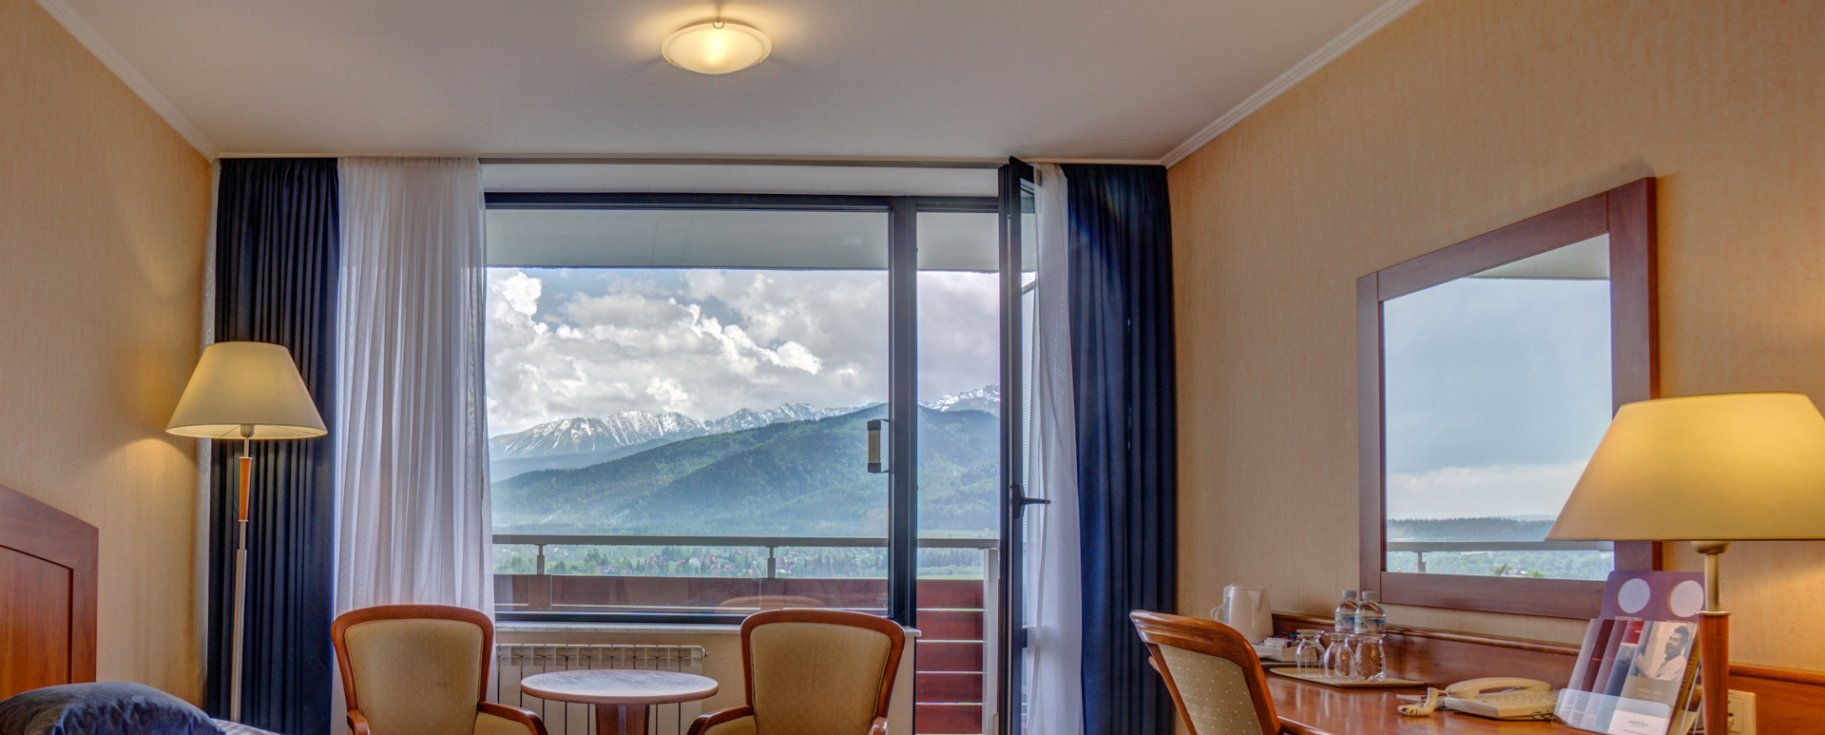 Superior Double with balcony overlooking the mountains